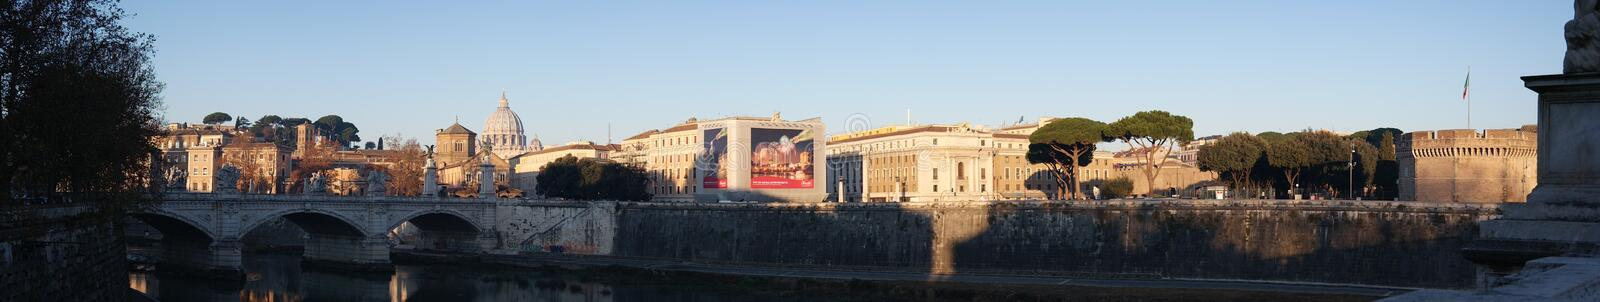 Panorama view on Vatican City royalty free stock photography